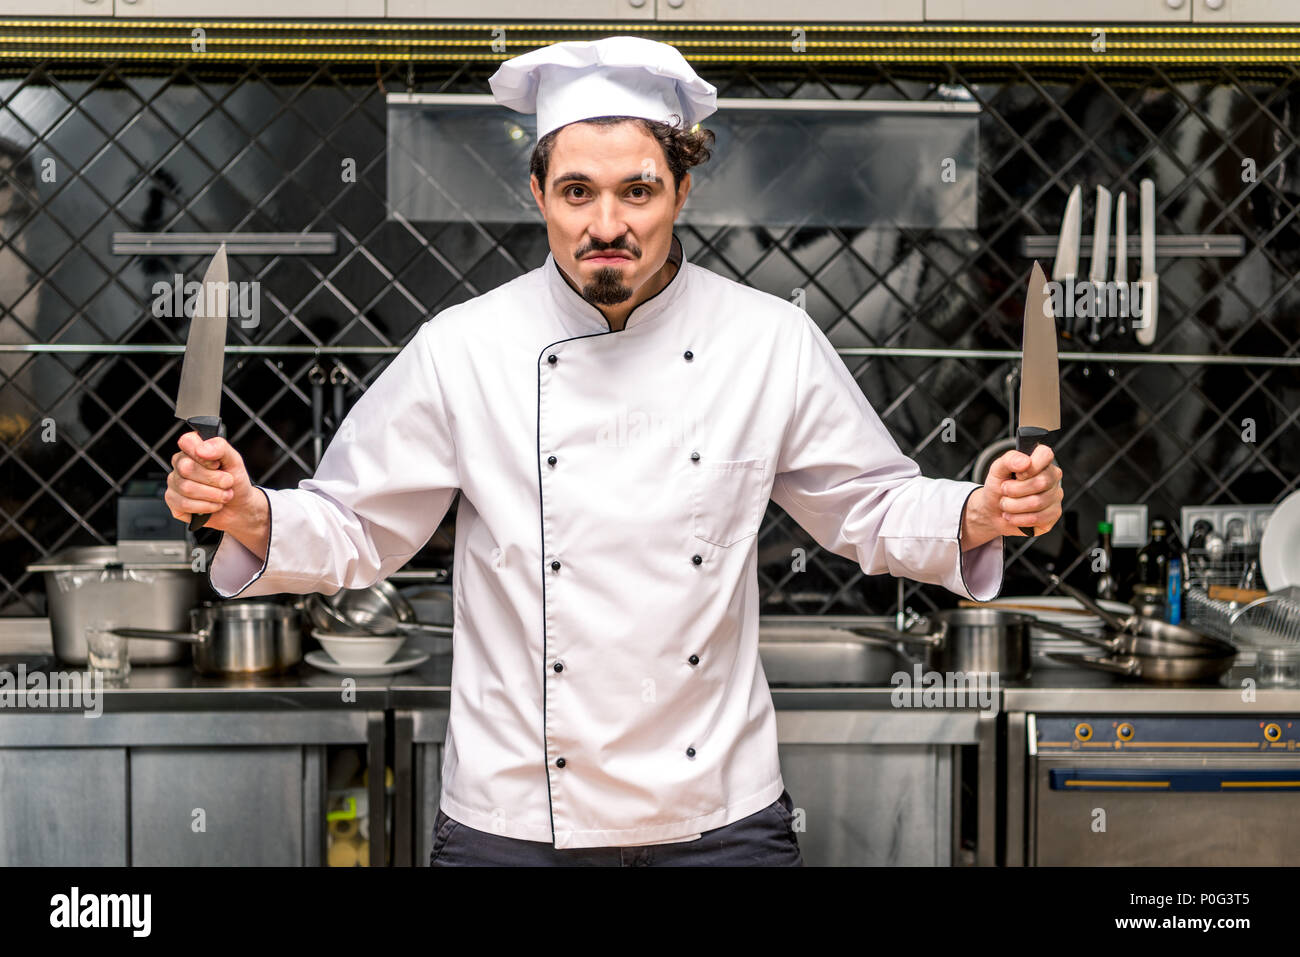 young chef grimacing and holding knifes - Stock Image